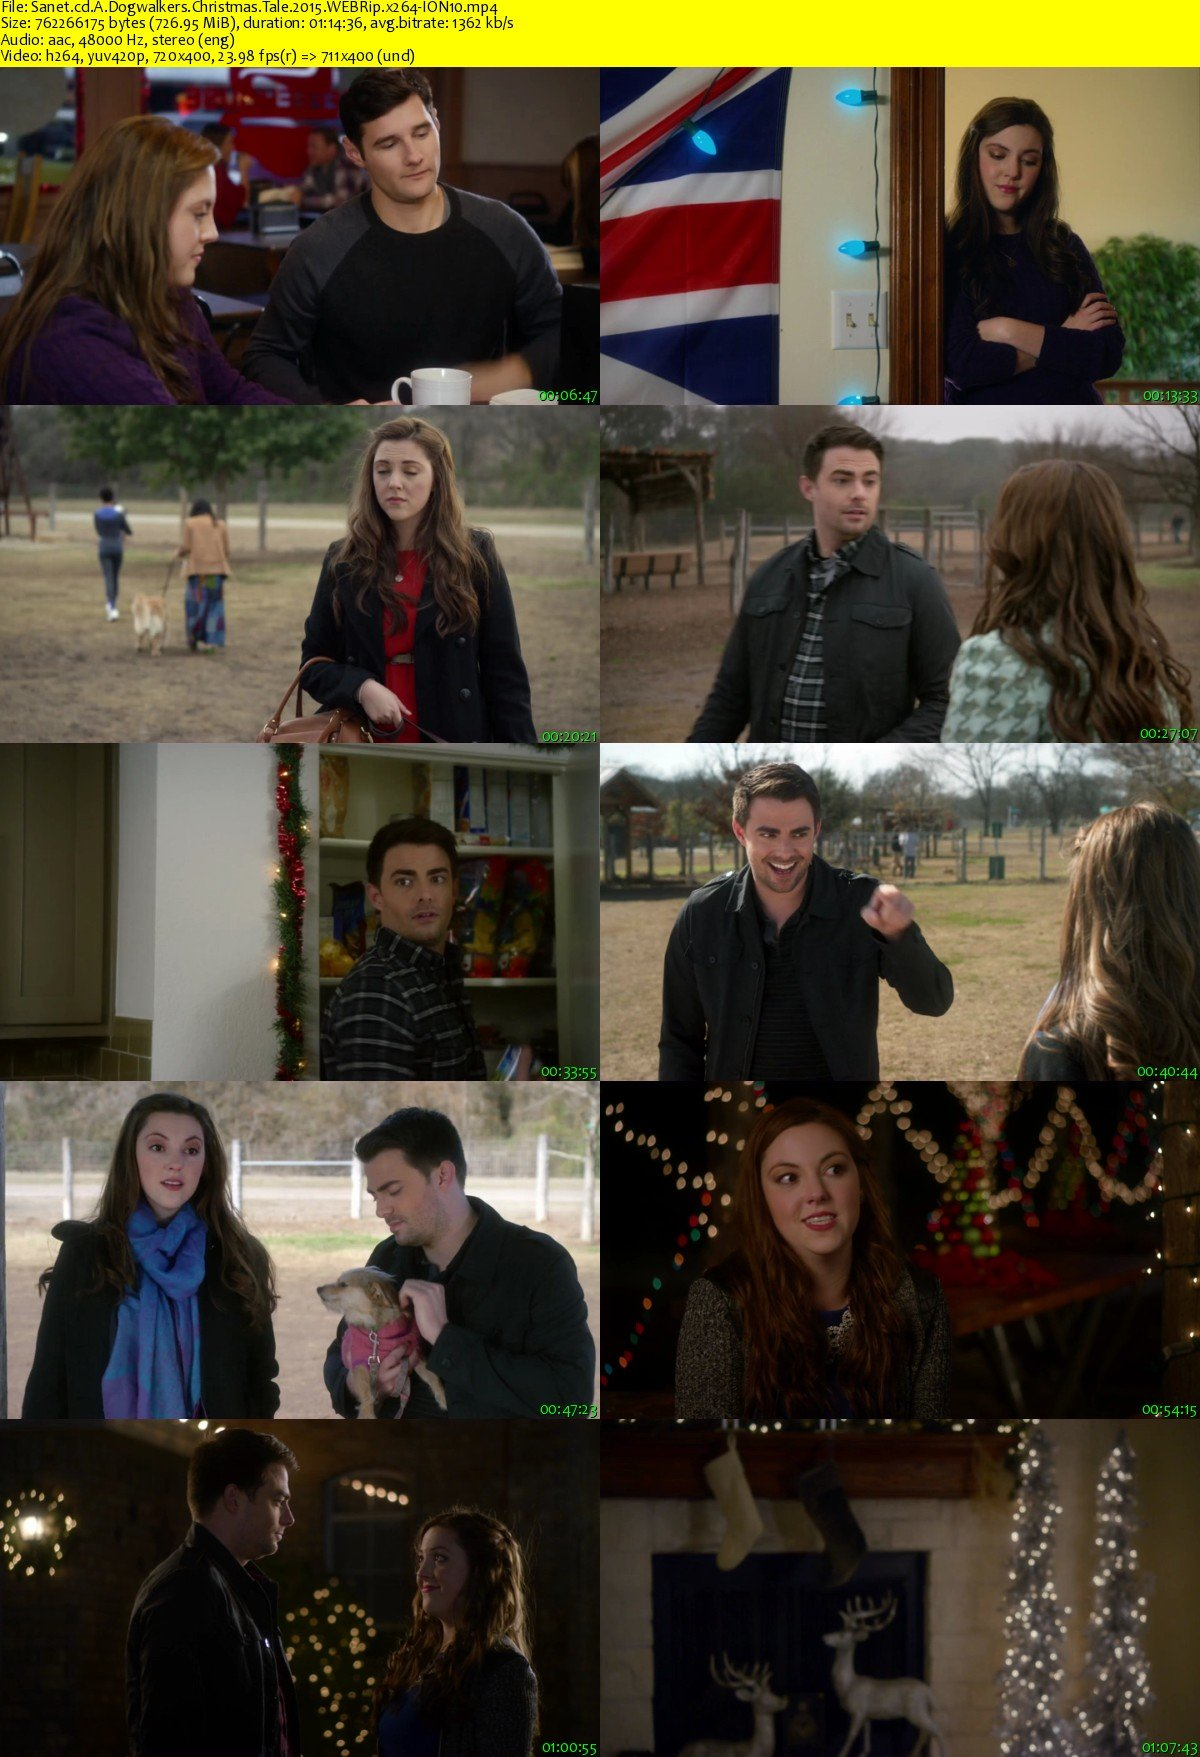 A Dogwalkers Christmas Tale.Download A Dogwalkers Christmas Tale 2015 Webrip X264 Ion10